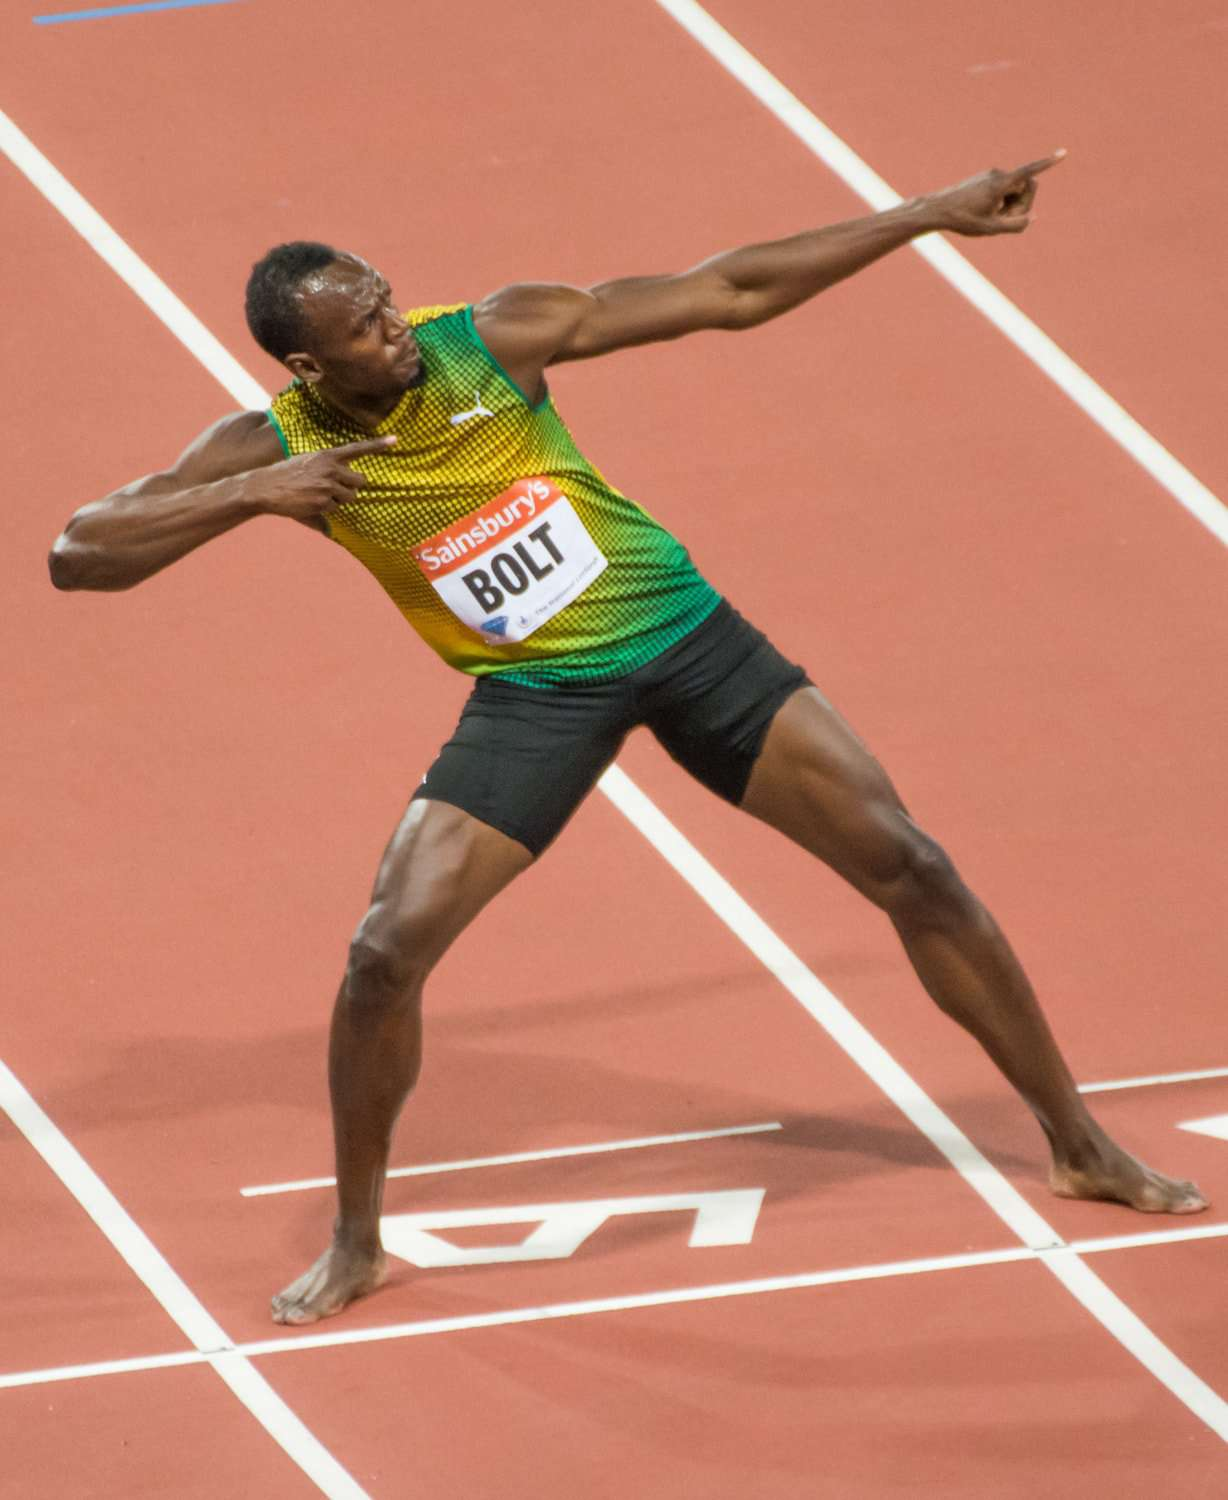 usain bolt dancing